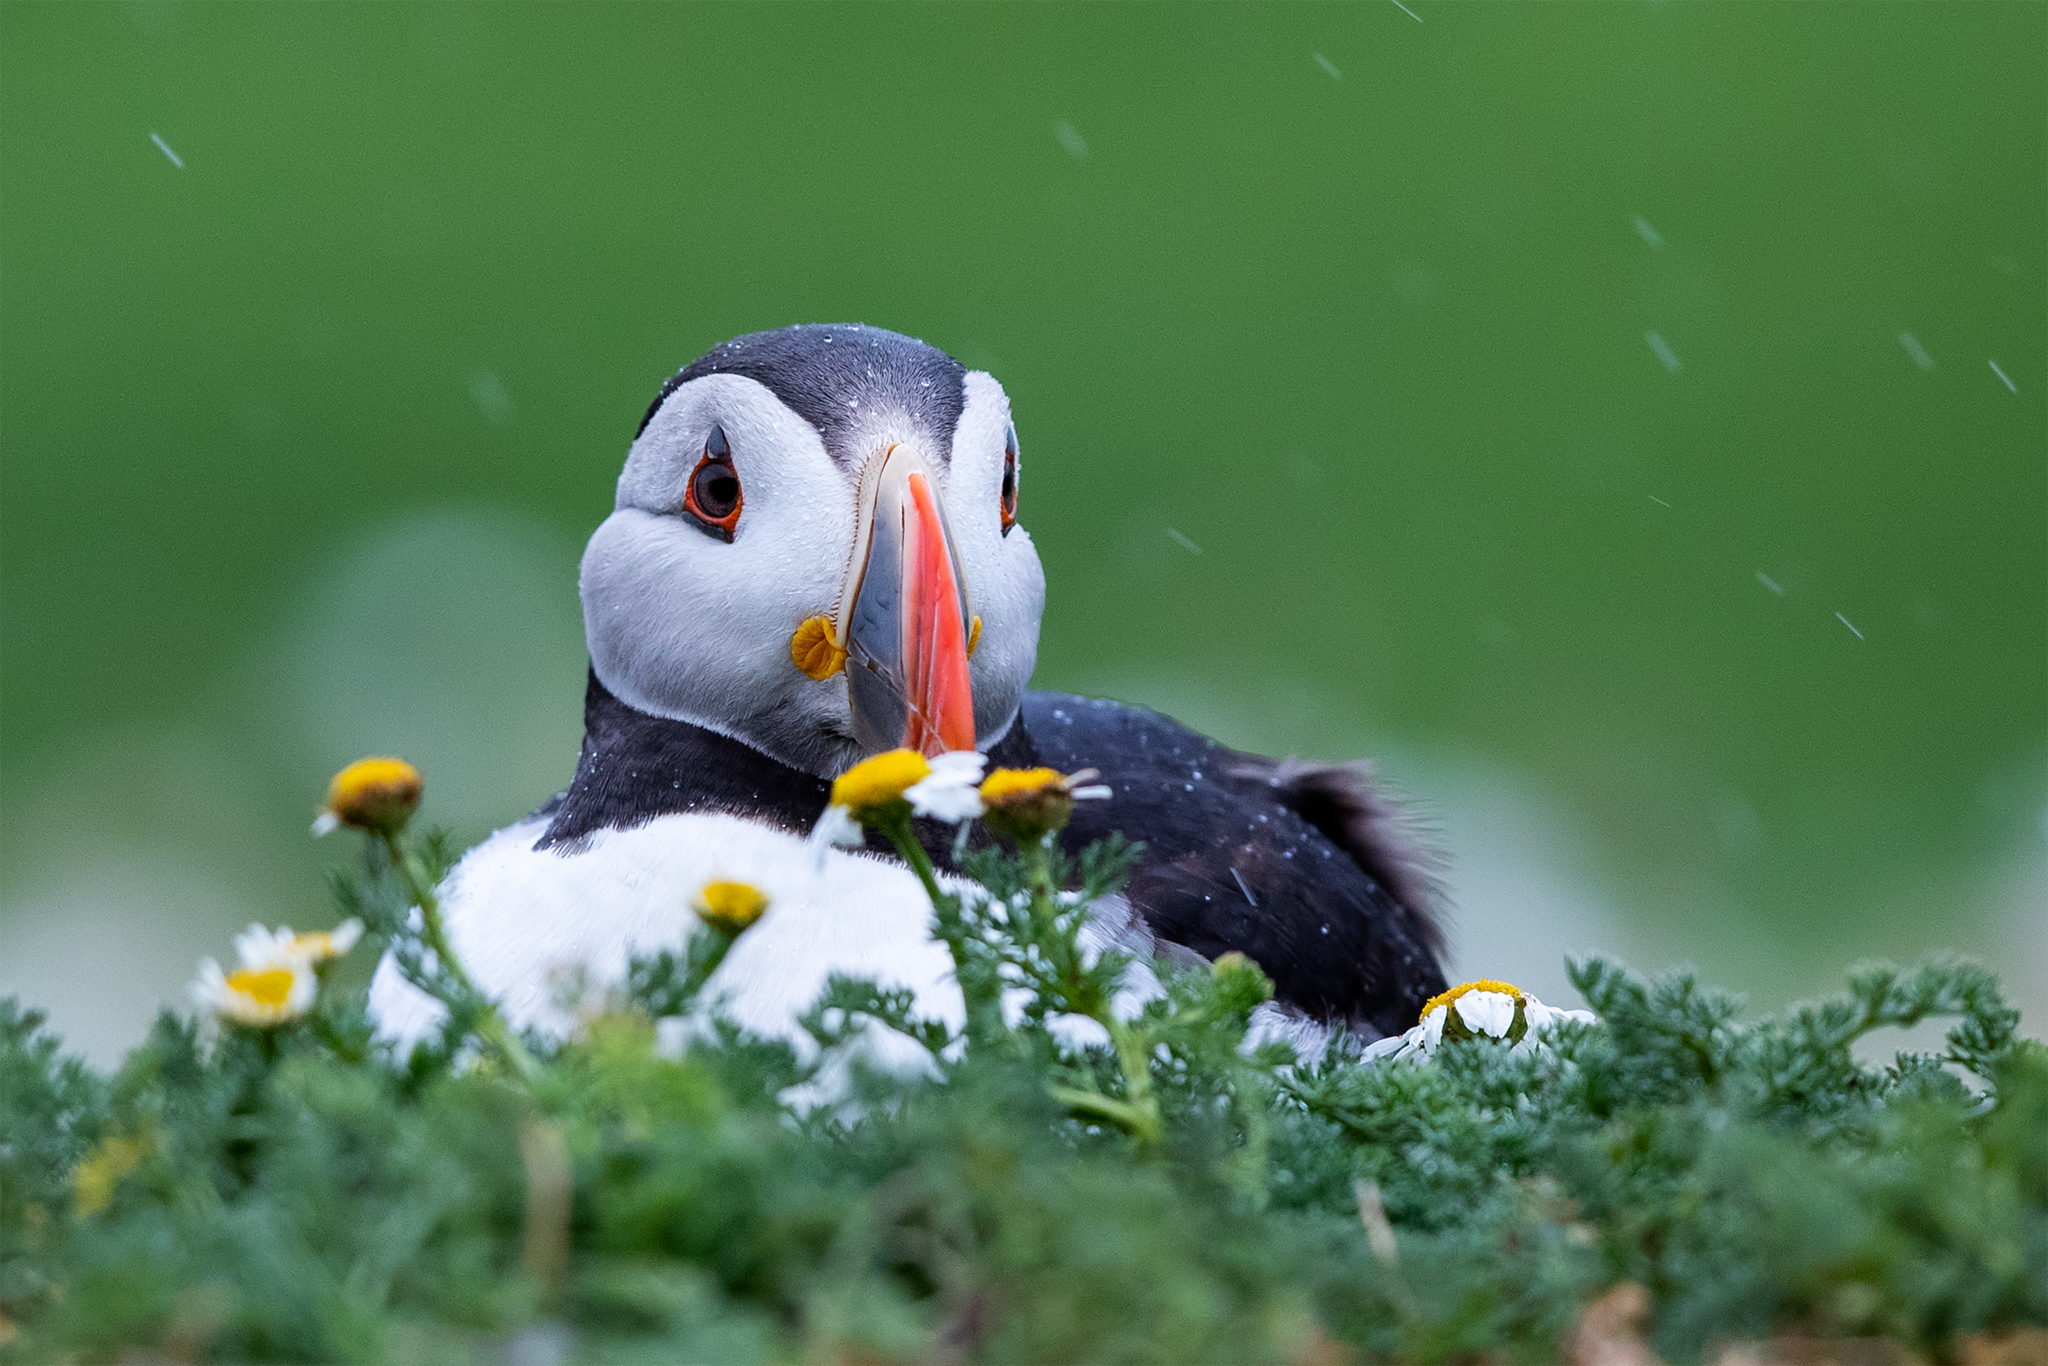 puffin noise reduction _A8I8093.jpg